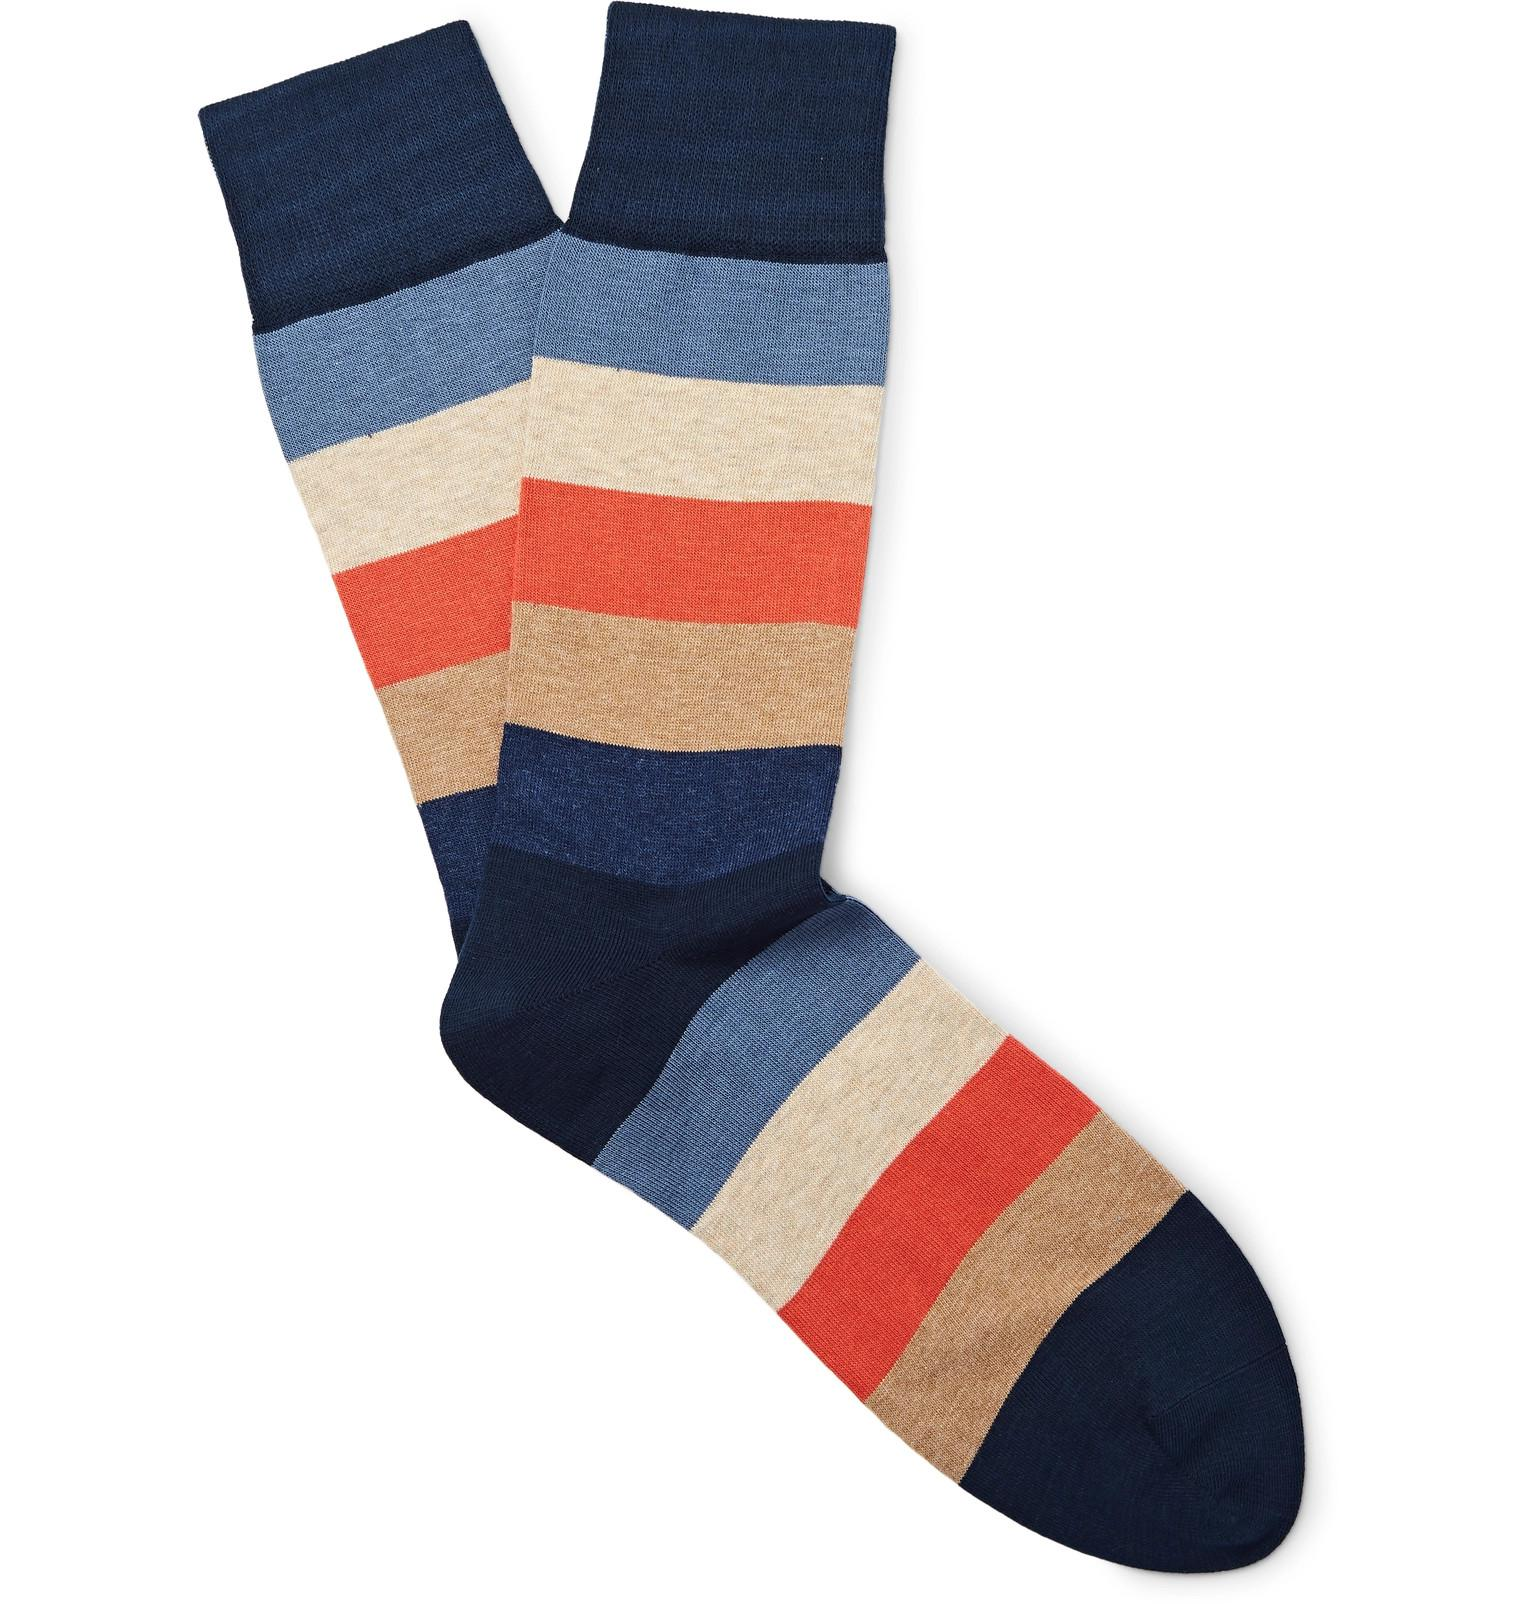 Three-pack Striped Cotton-blend No-show Socks Corgi Best Online Best Place Discount For Sale To Buy aegVm7PwPo